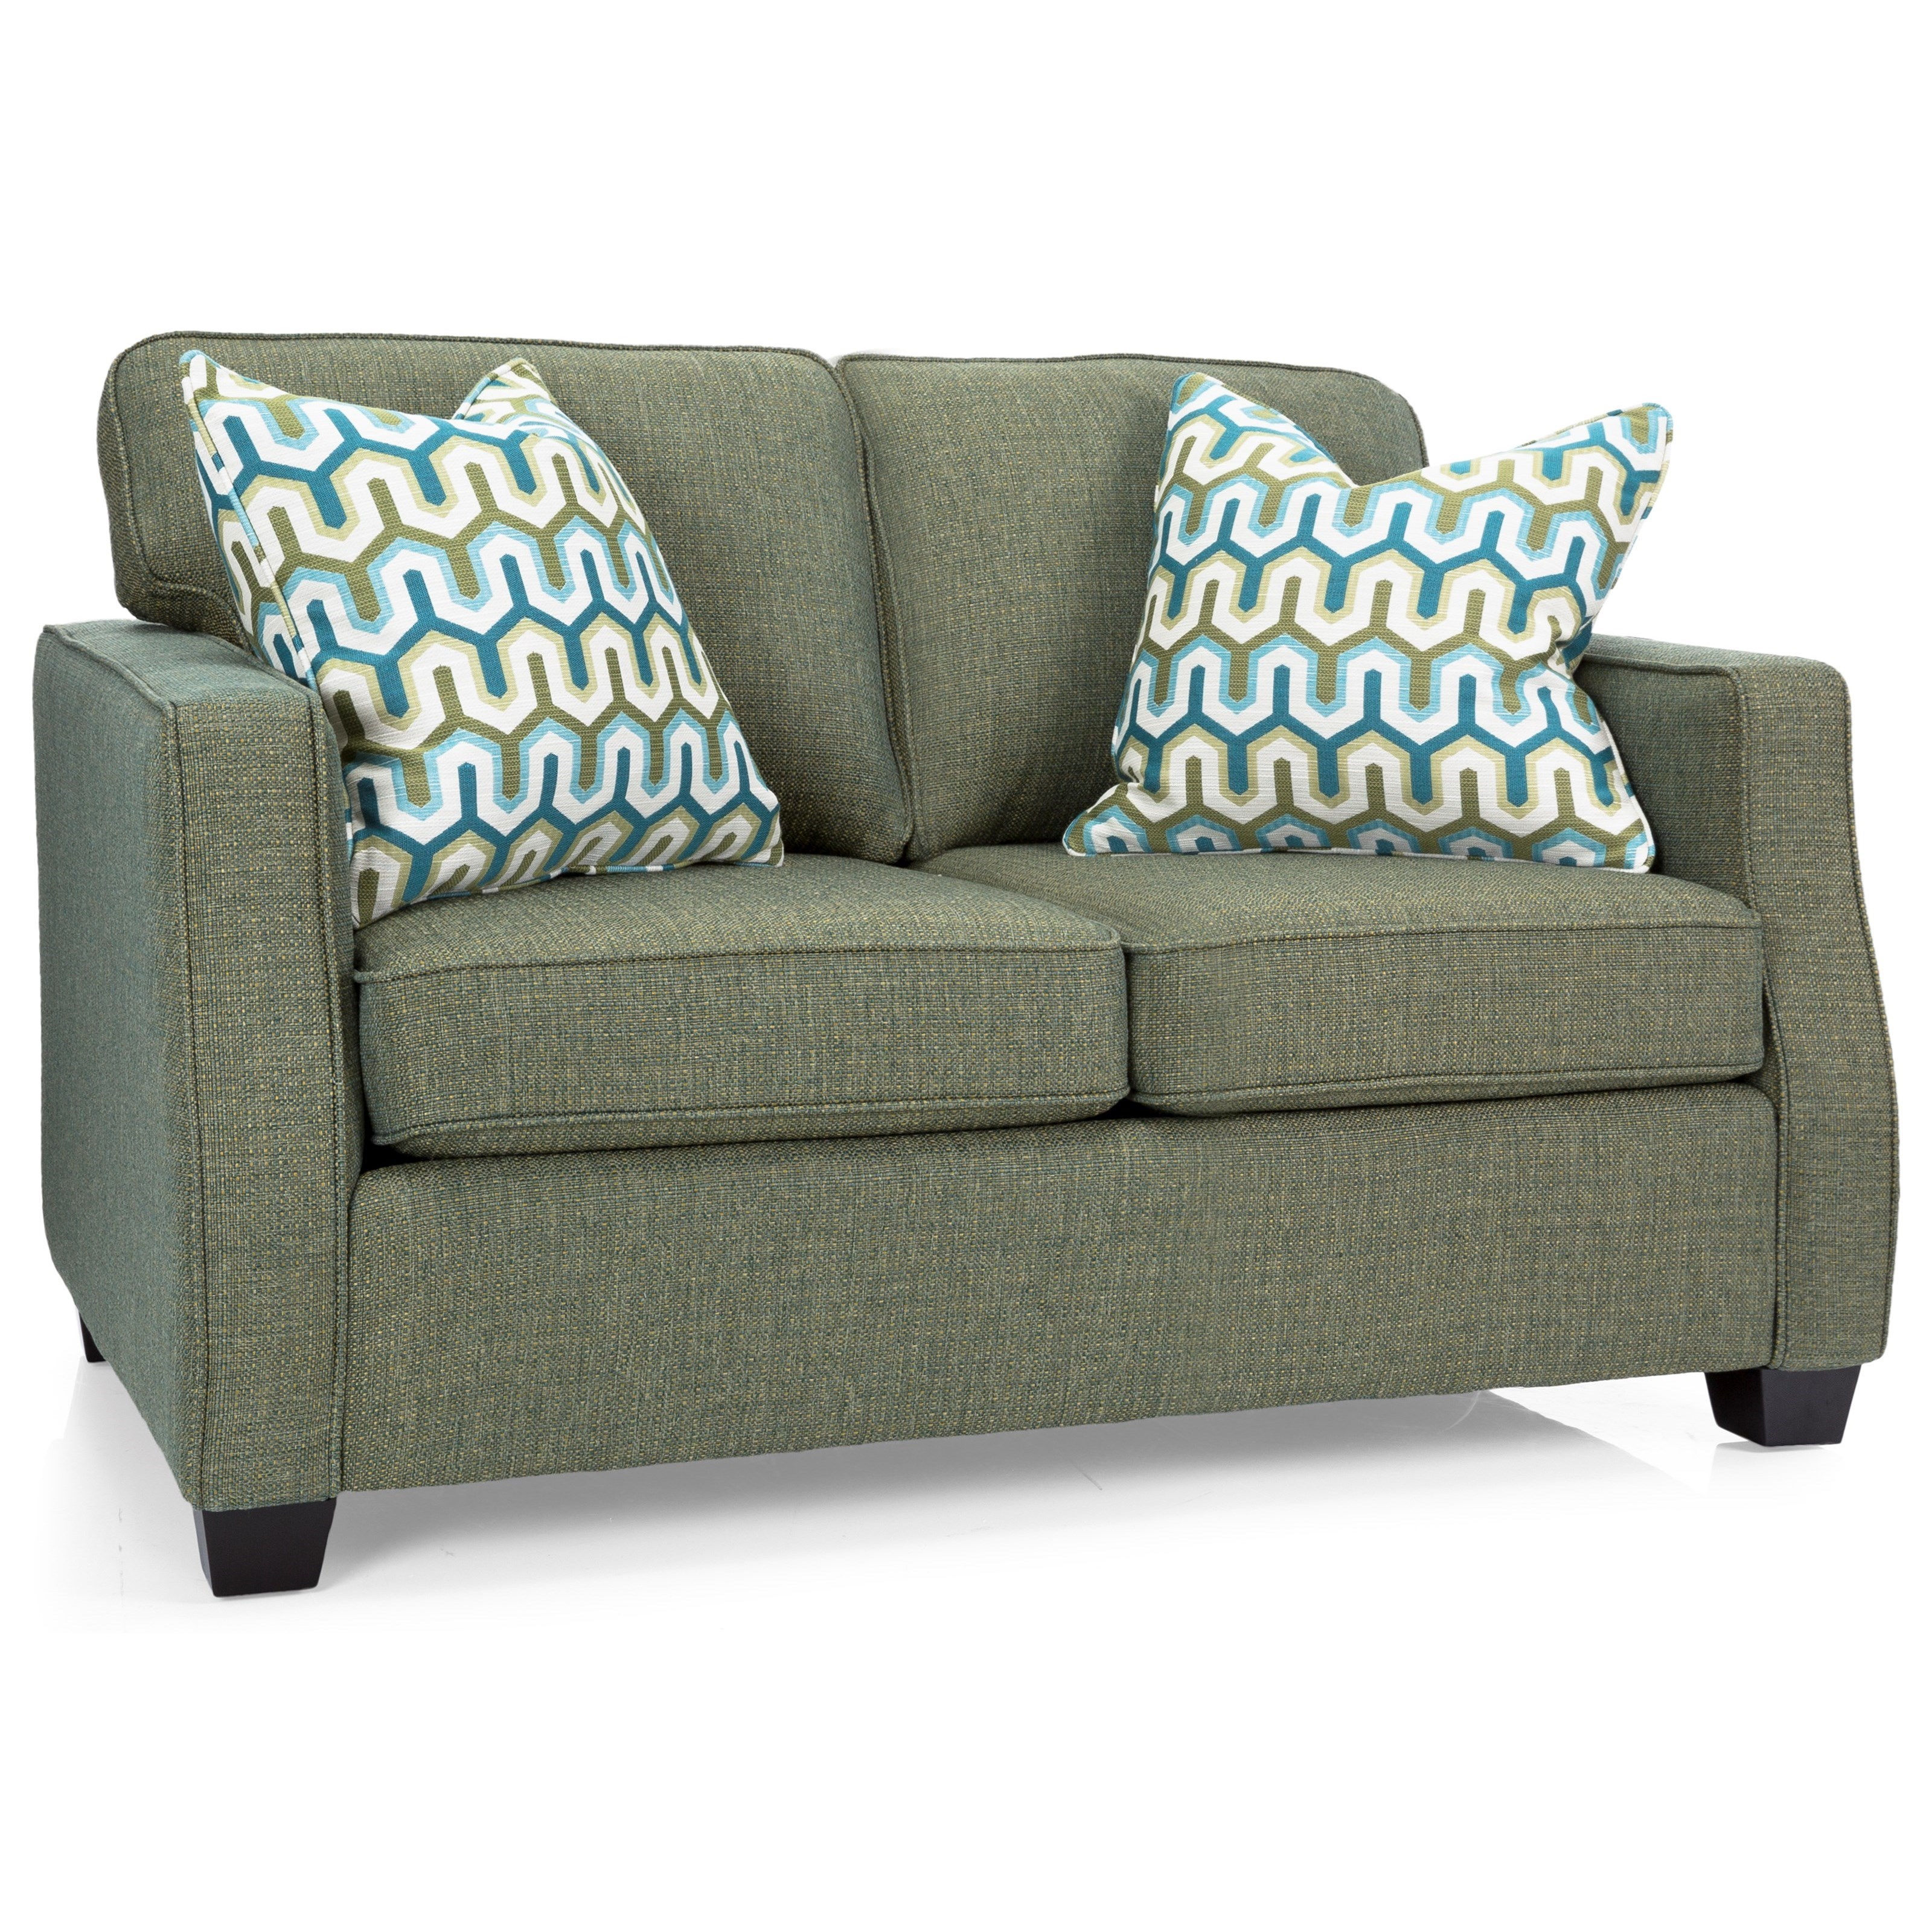 2570 Loveseat by Decor-Rest at Stoney Creek Furniture